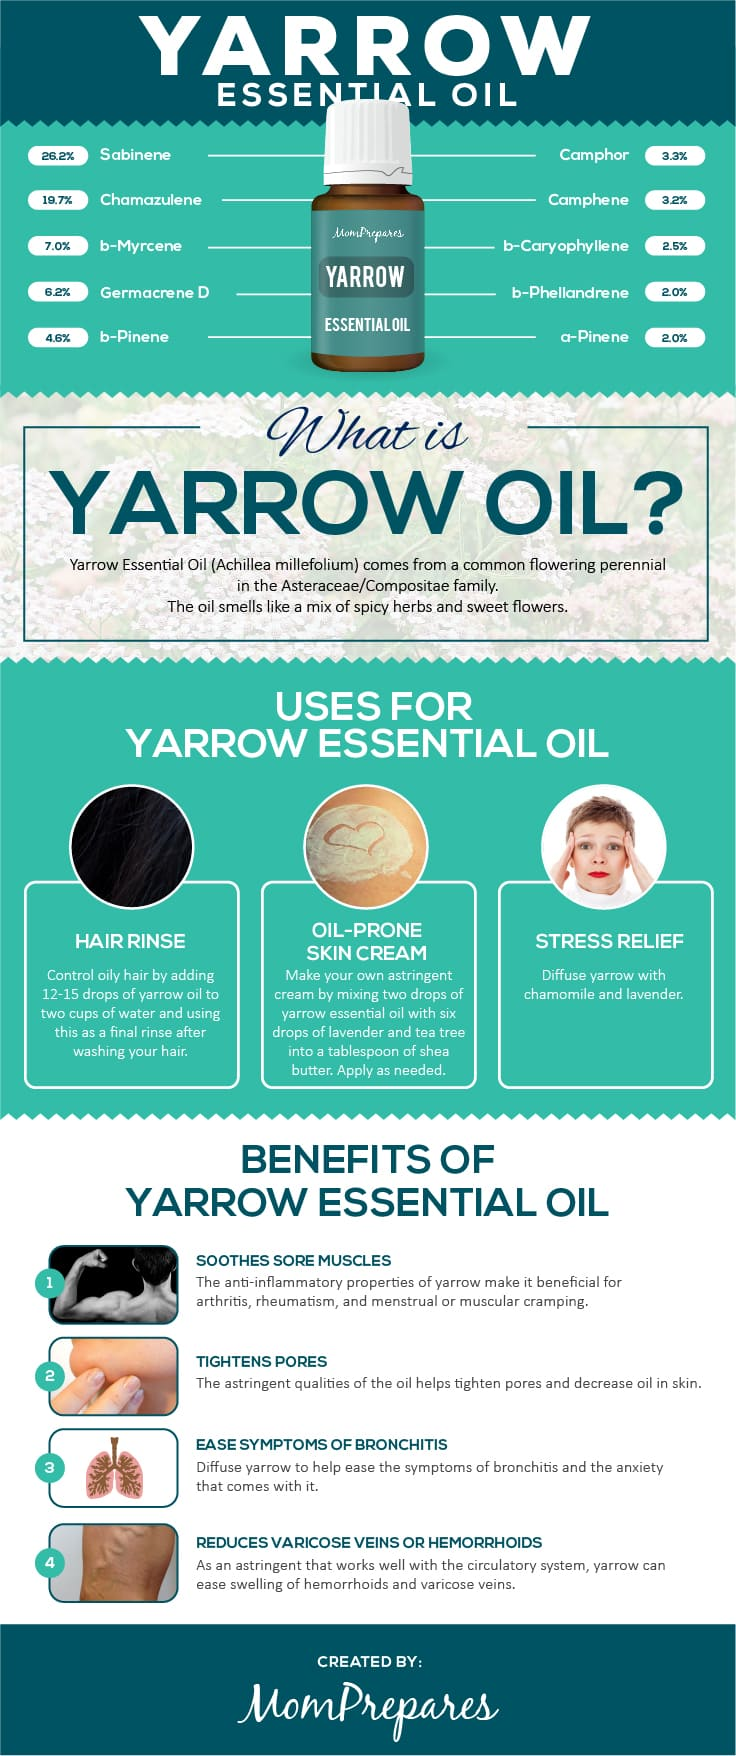 Yarrow infographic